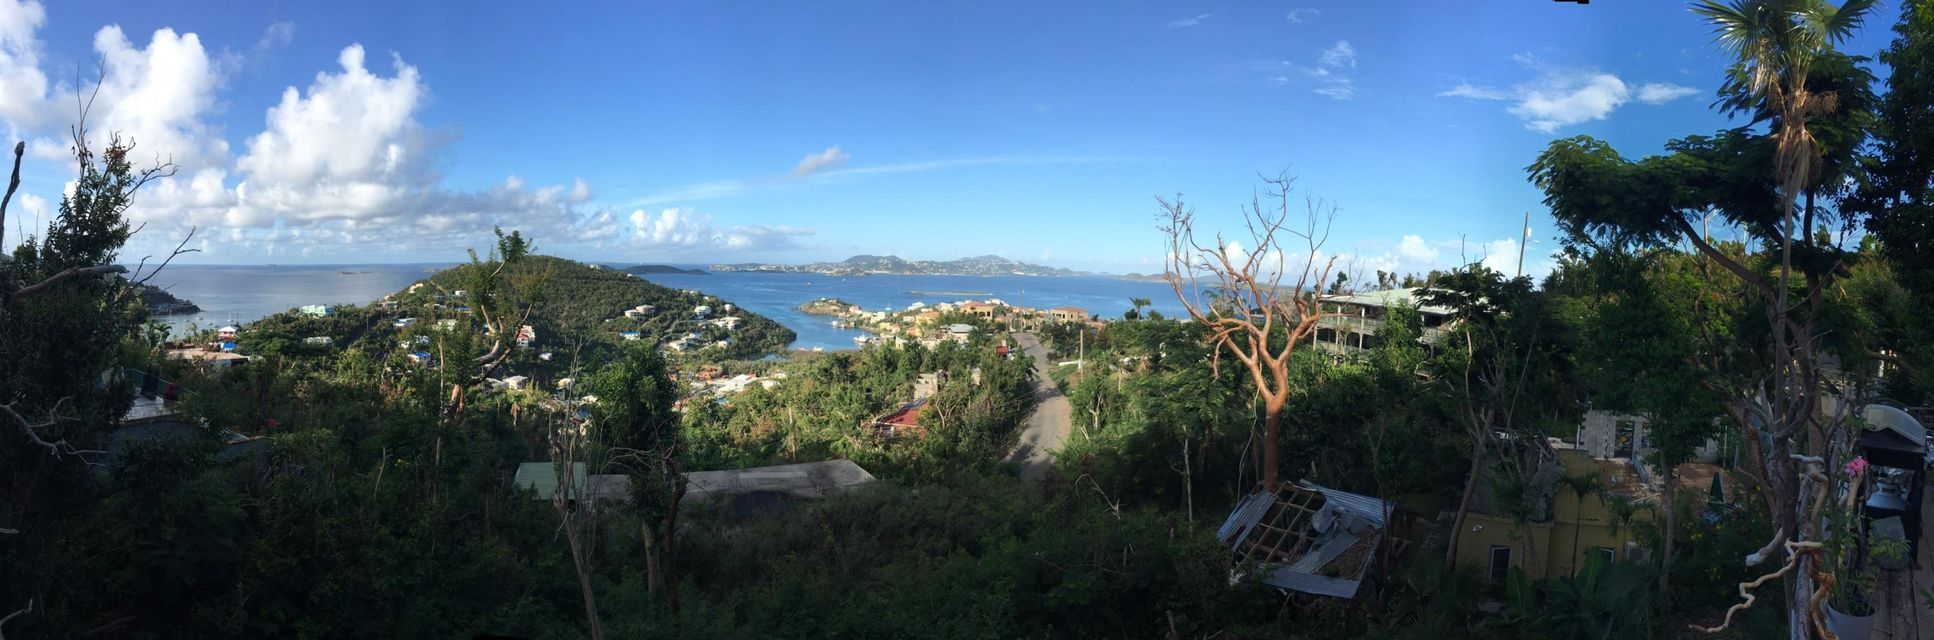 Single Family Home for Sale at Enighed Enighed St John, Virgin Islands 00830 United States Virgin Islands